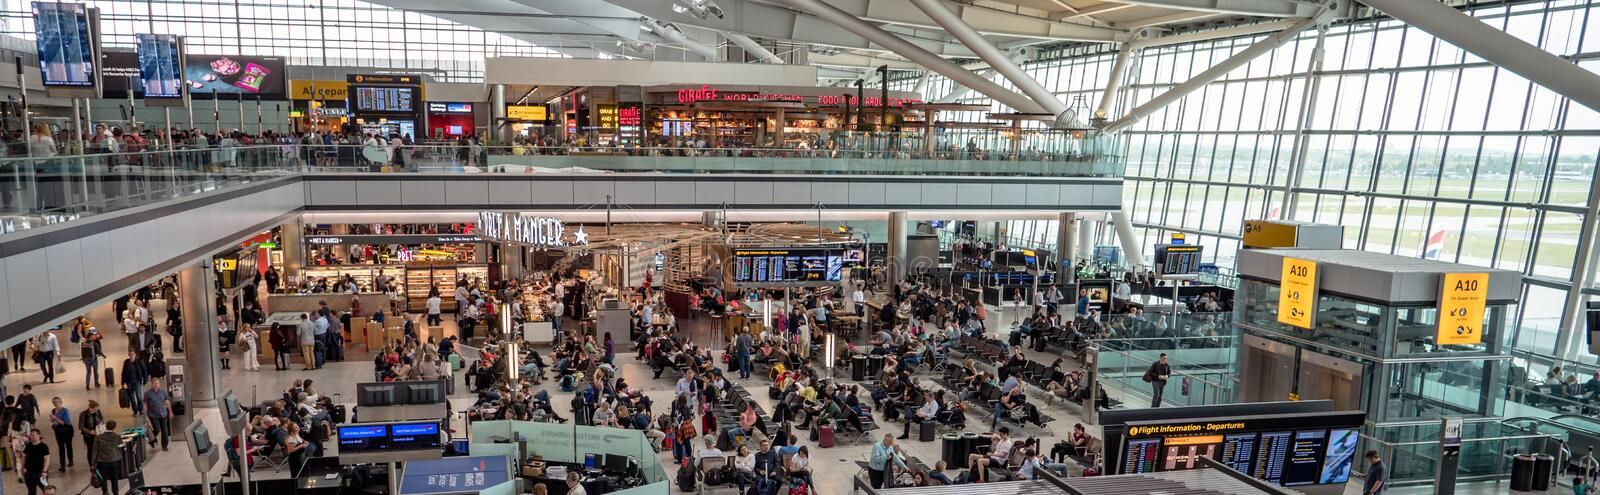 Panoramic London Heathrow Airport terminal 5 departure hall restaurants, shops and cafes. Passengers waiting to board flights. London Heathrow Airport T5, United royalty free stock photo